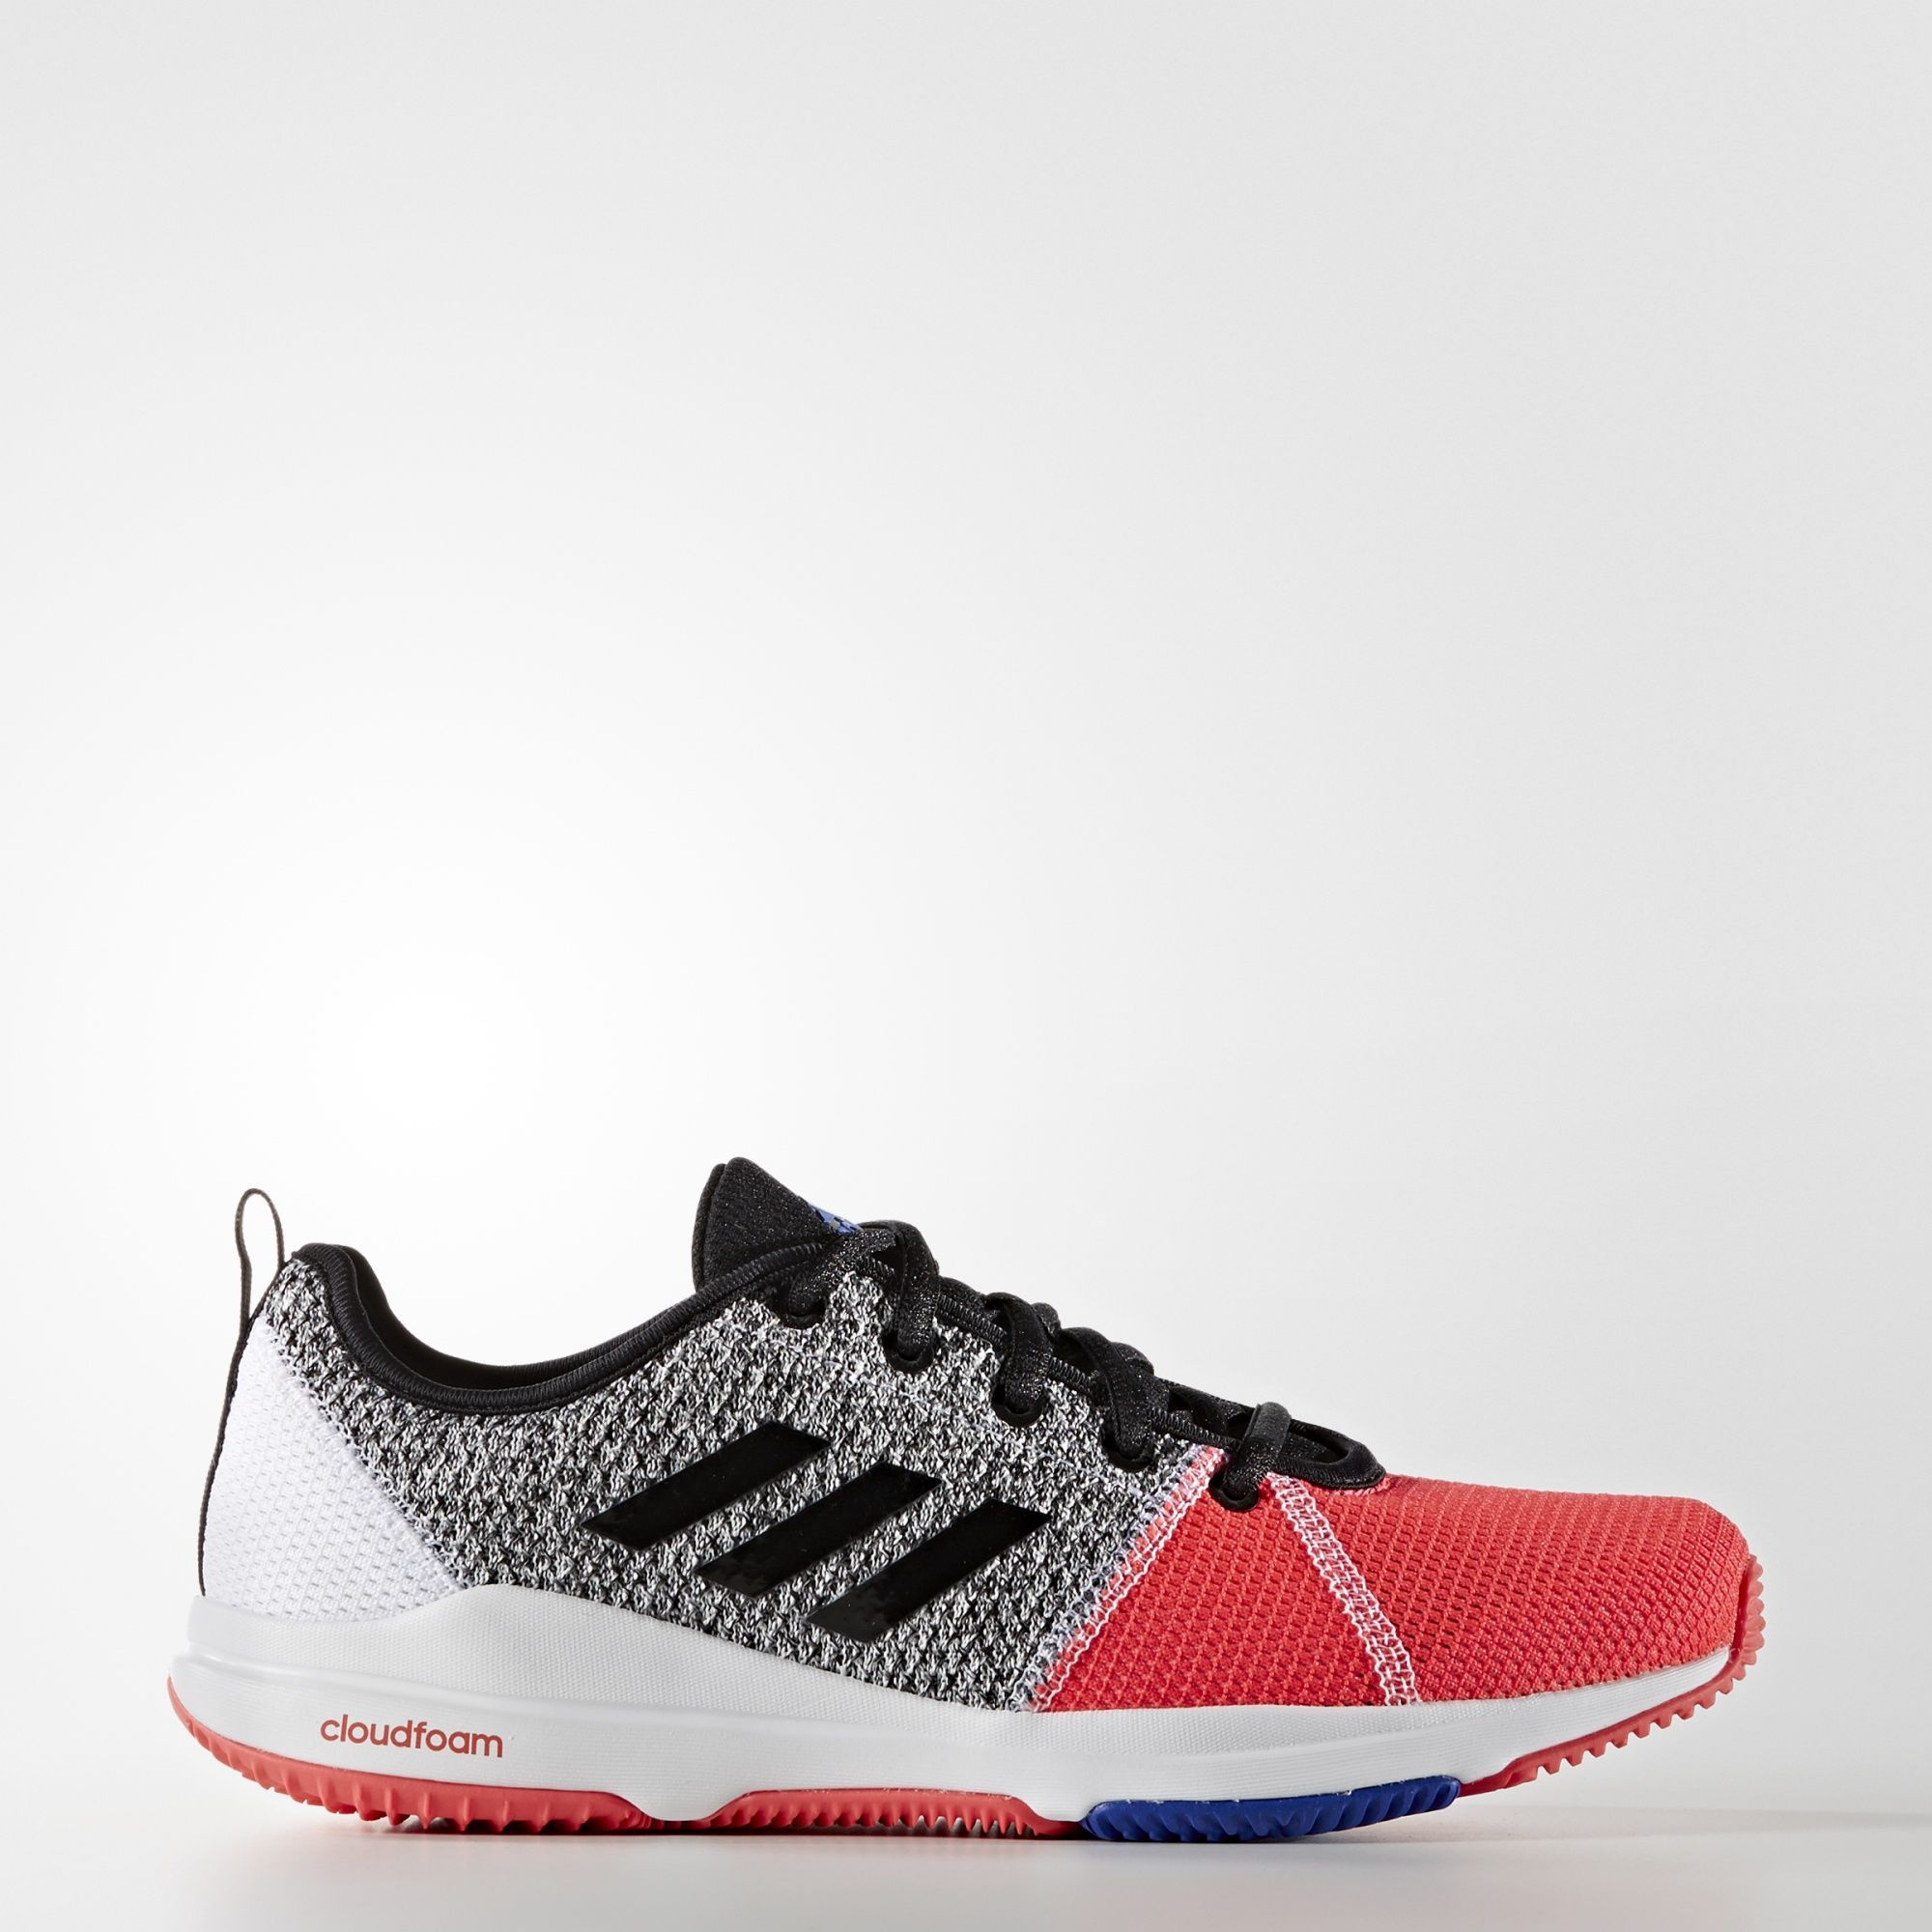 adidas arianna cloudfoam women's training shoes